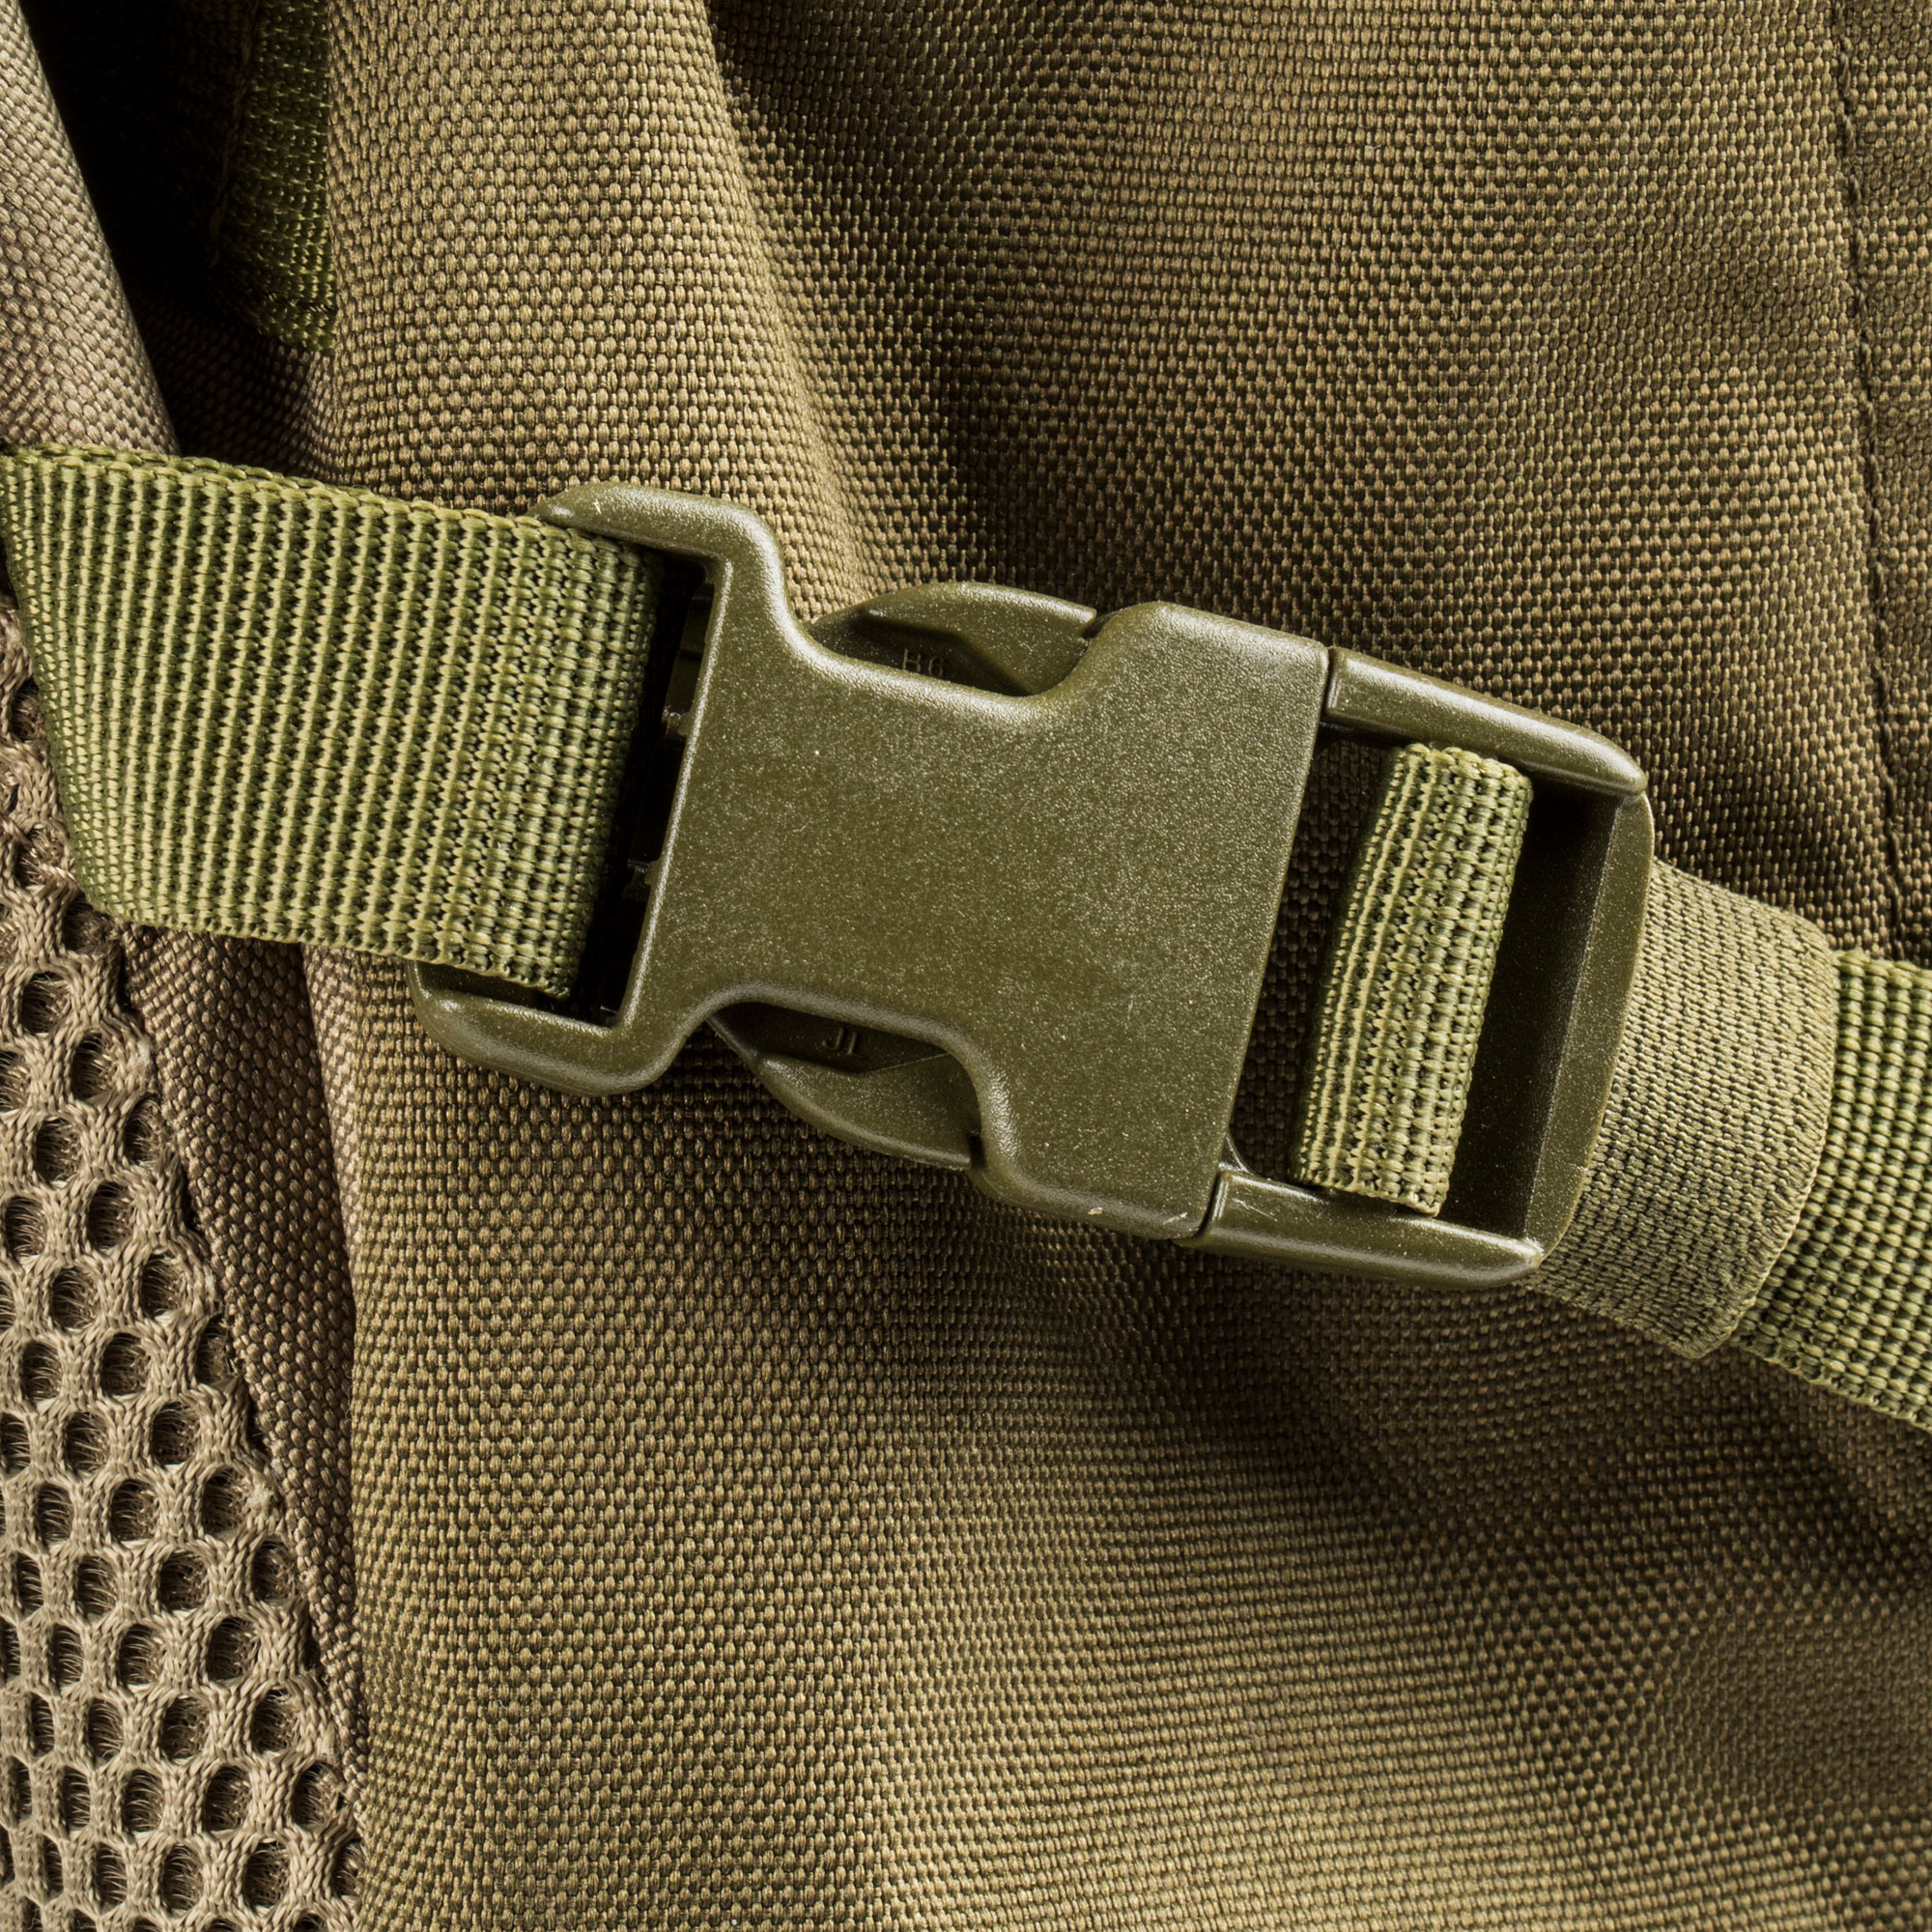 5-11-Tactical-Rapid-Origin-Pack-25L-Backpack-MOLLE-Hydration-Pocket-Style-56355 thumbnail 24